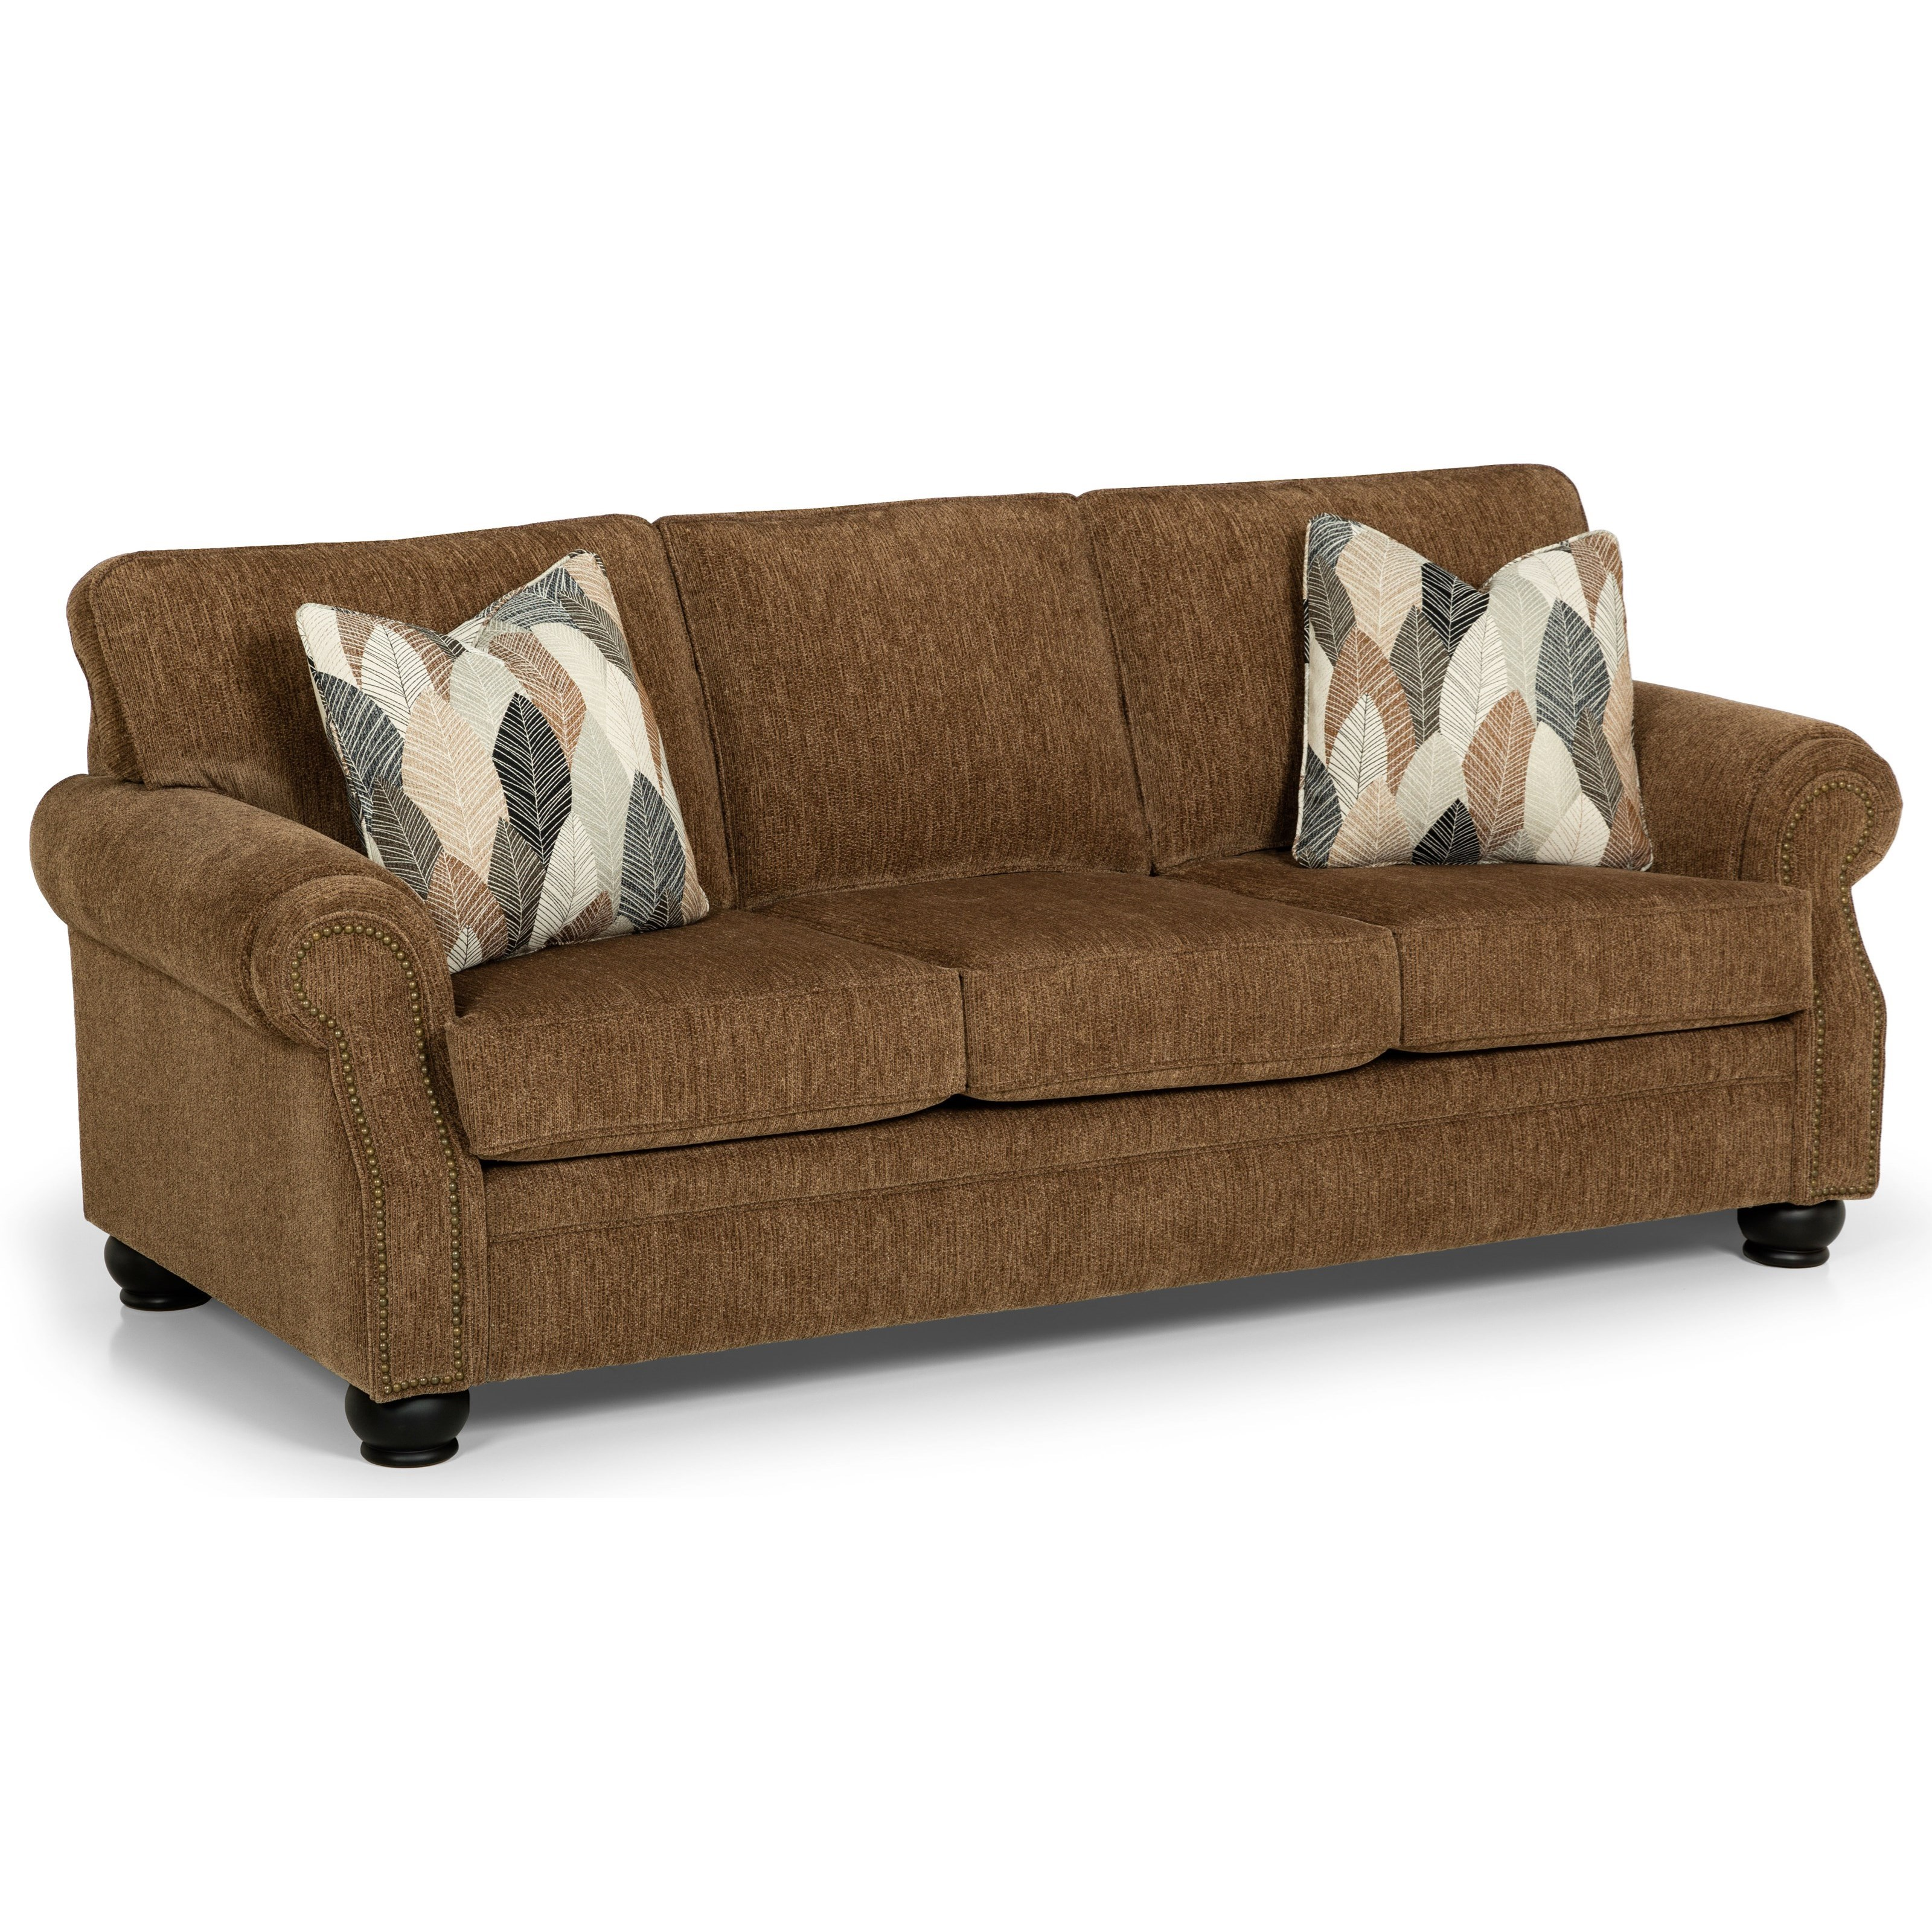 291 Sofa by Stanton at Wilson's Furniture